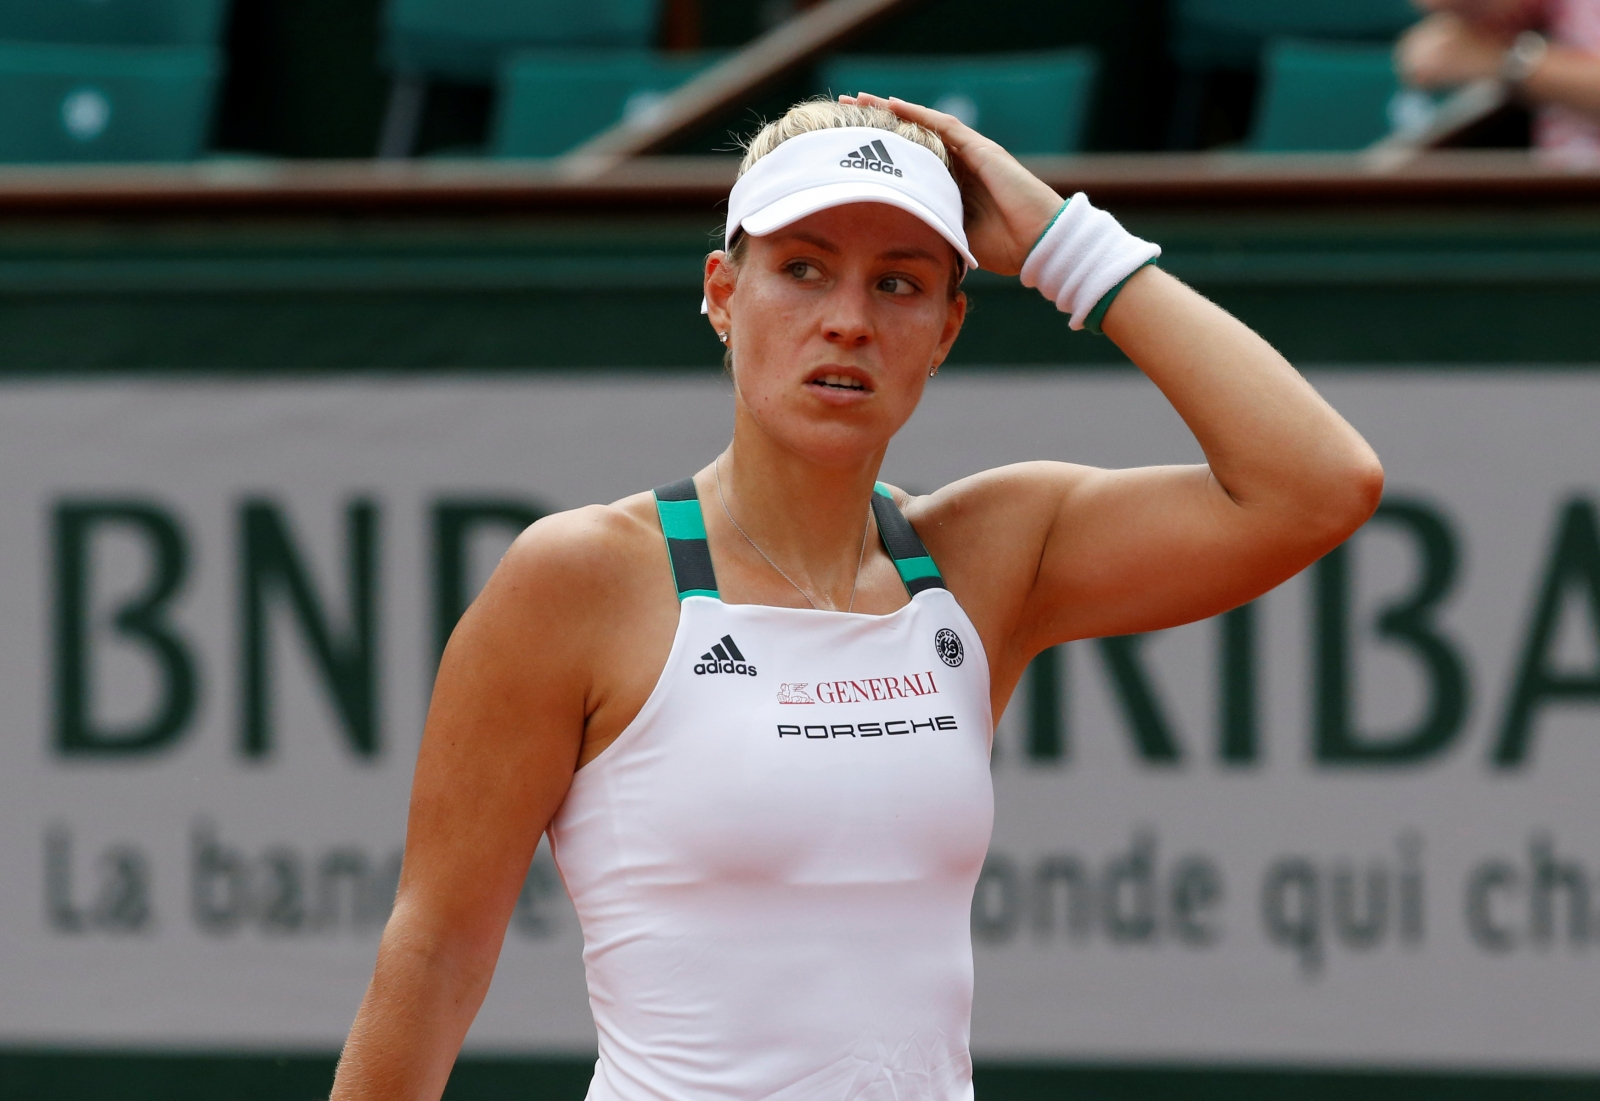 After upset, a loss for Makarova at French Open